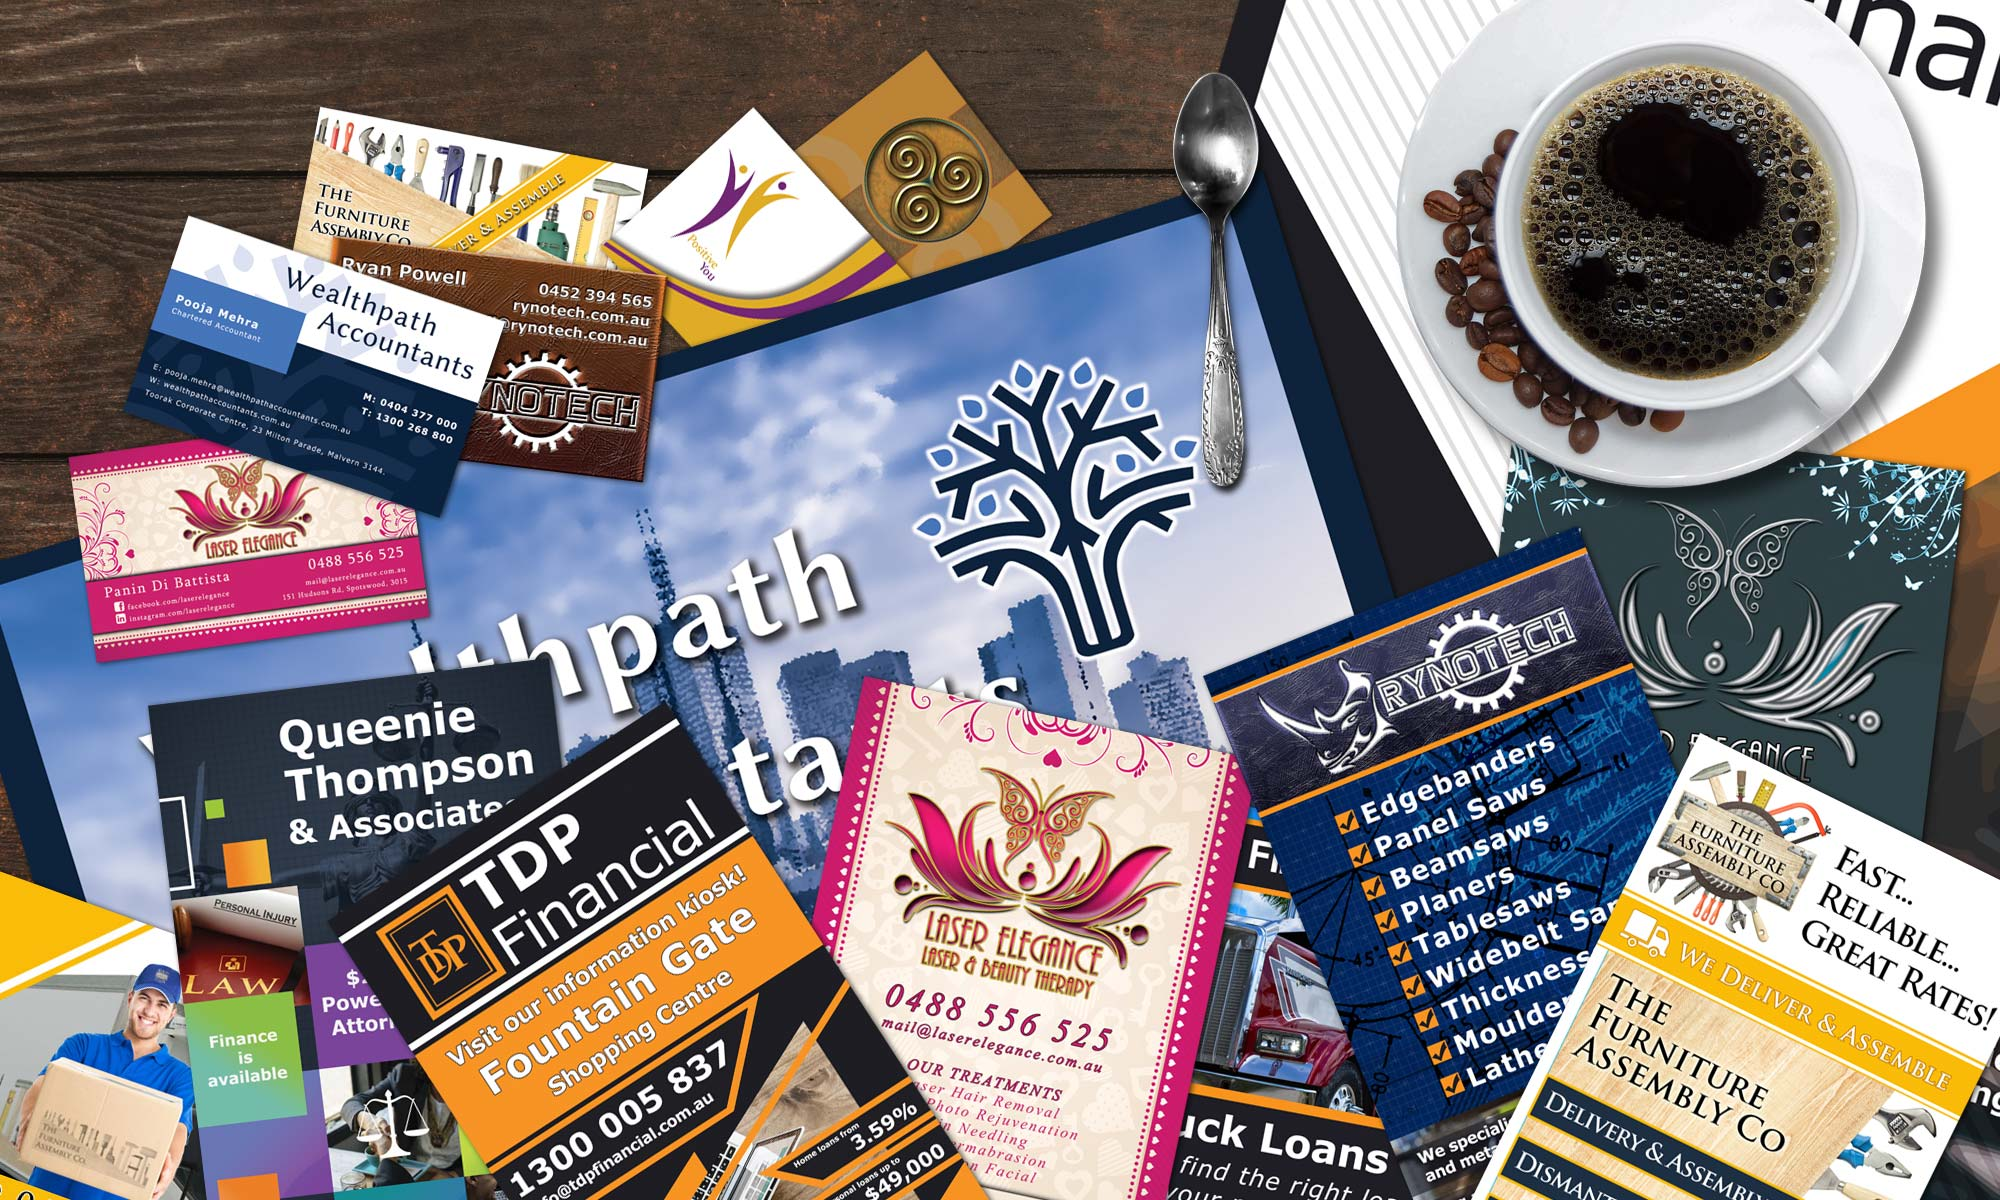 Flyers, business cards and print graphics from PreBuiltWebSite